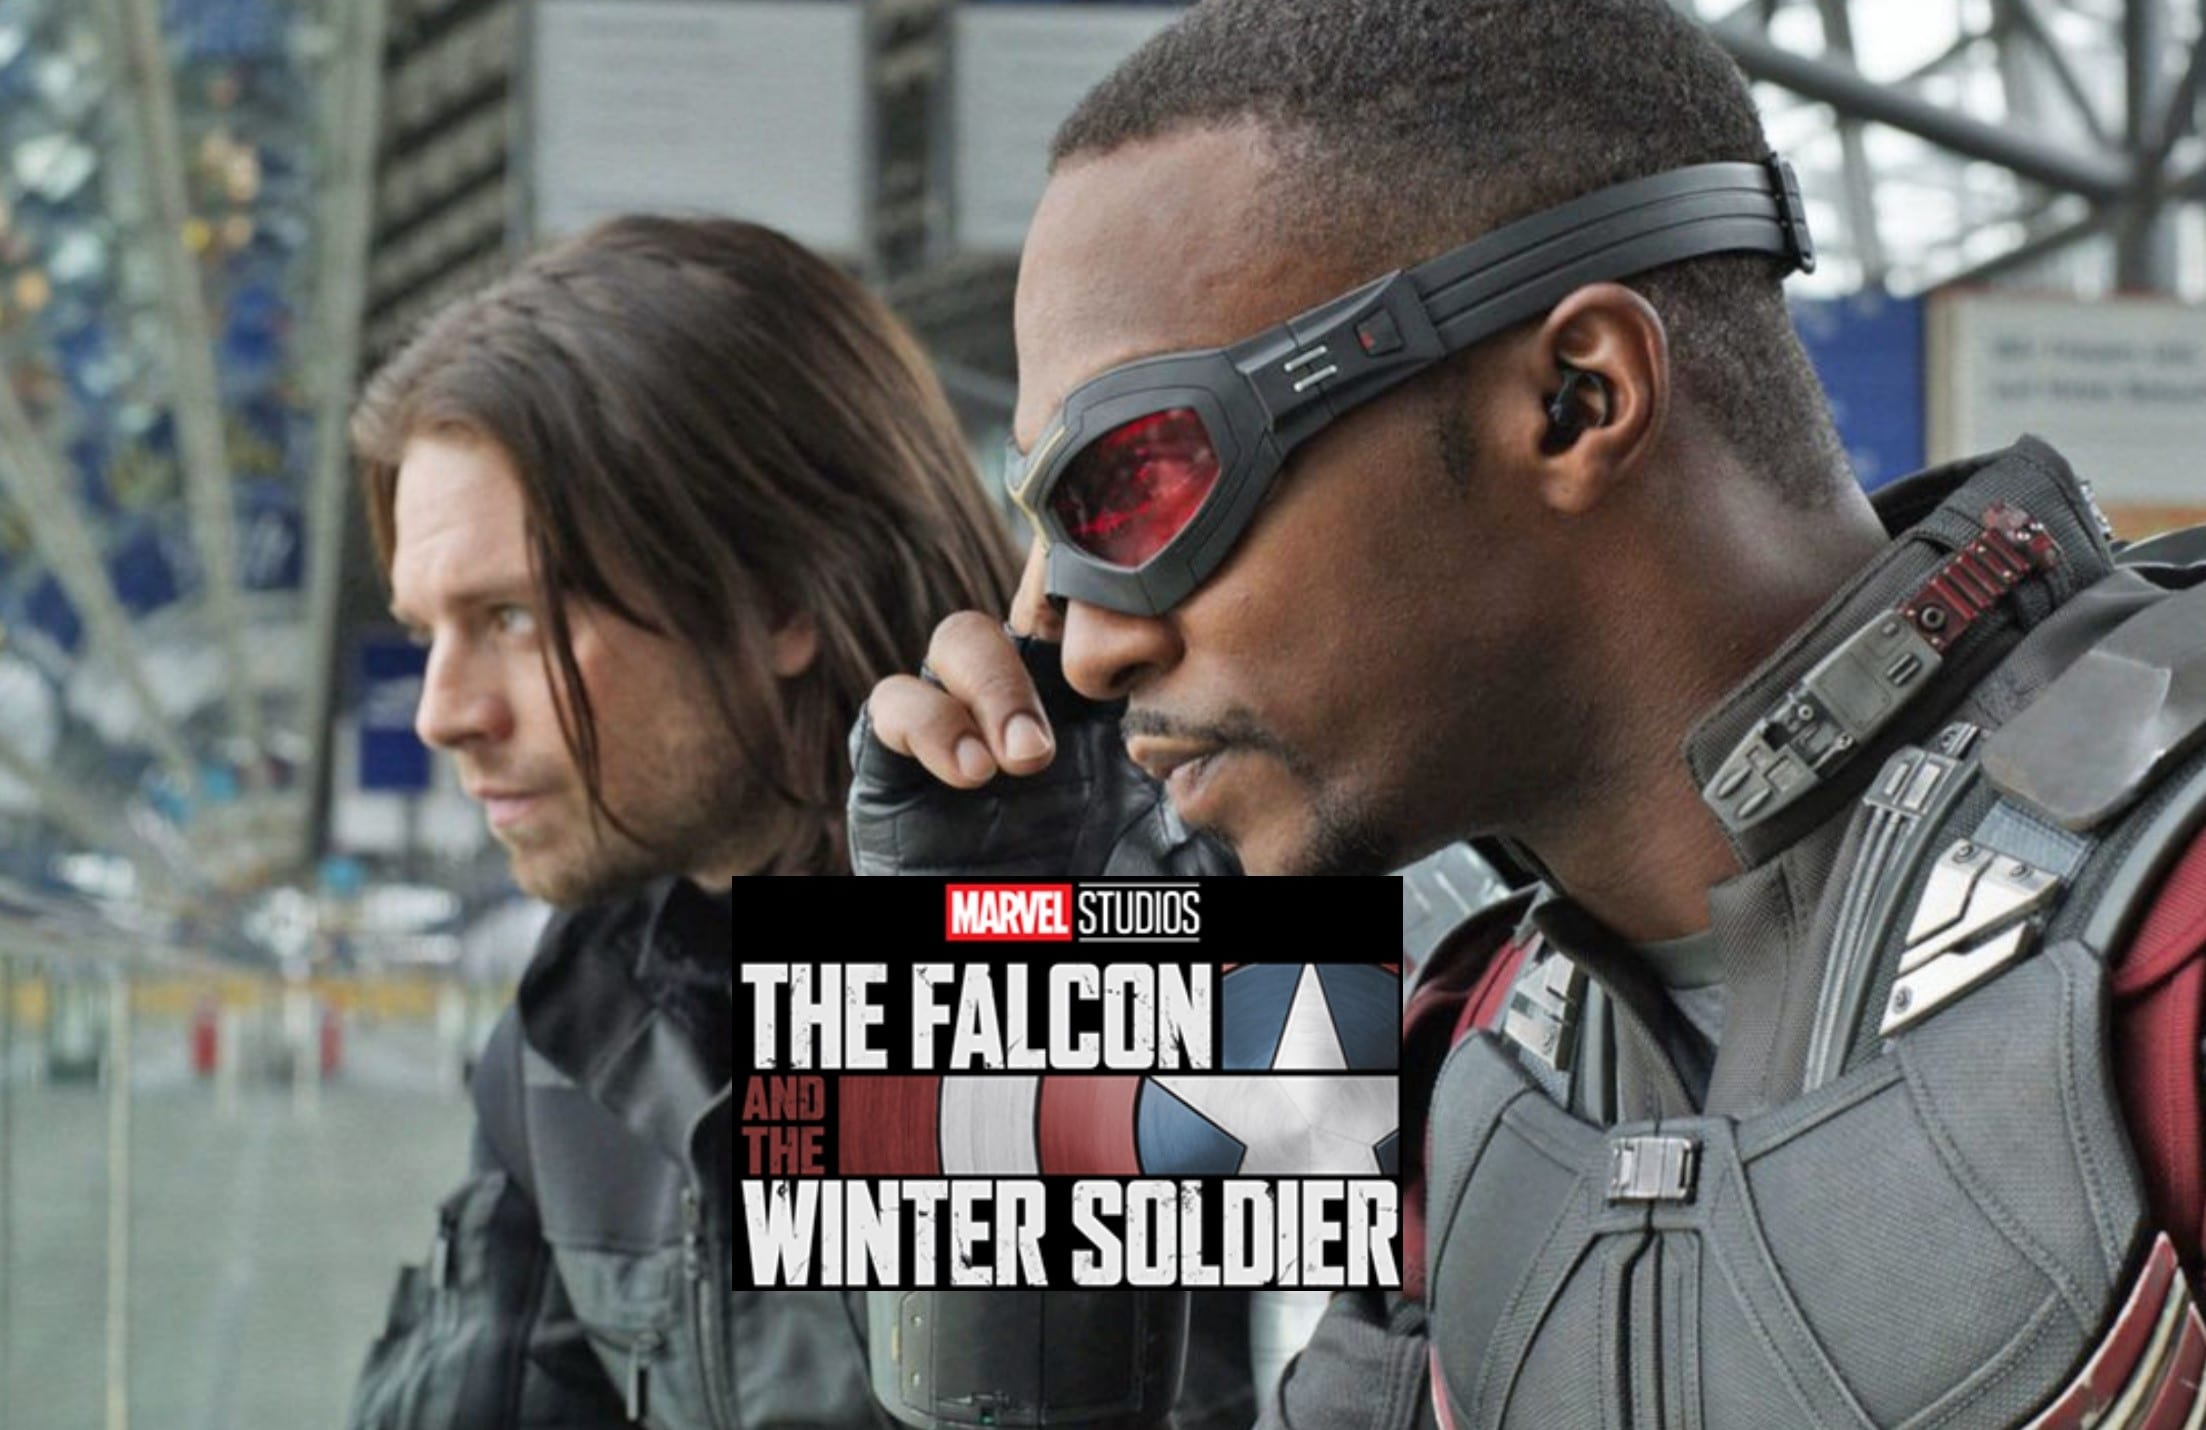 Report: New release date for The Falcon and Winter Soldier will be announced soon